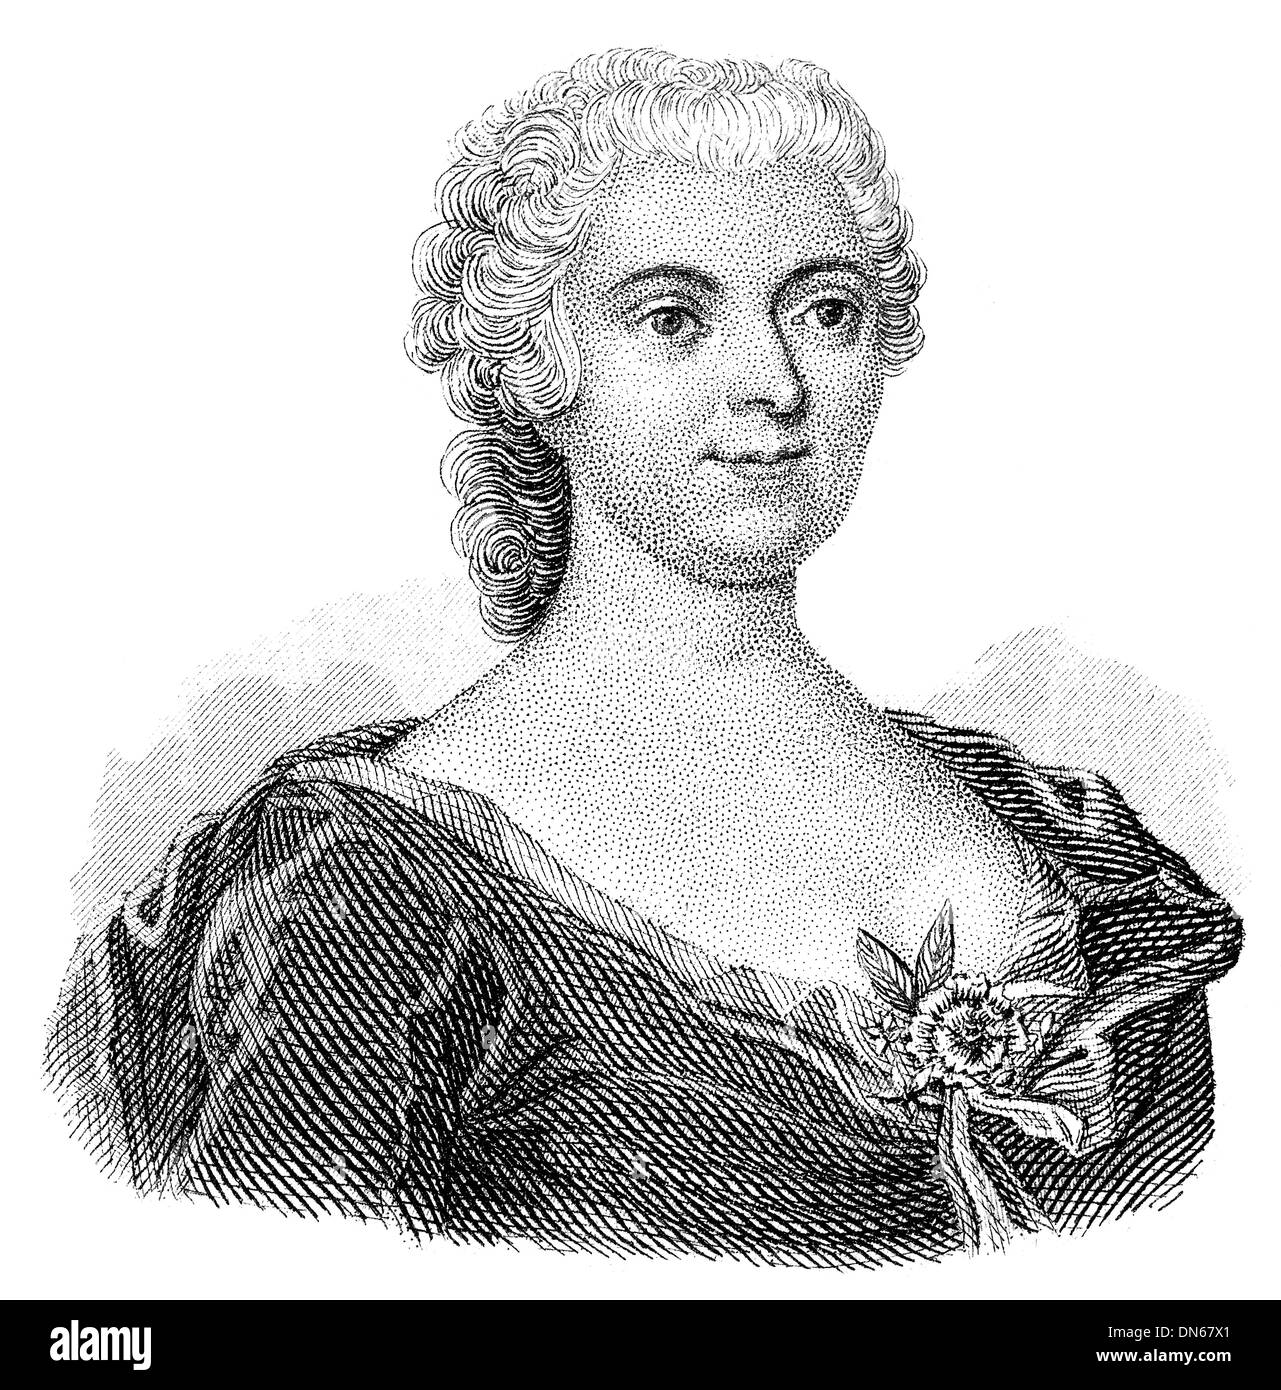 Friederike Caroline Neuber, called Die Neuberin, 1697 - 1760, a German actress and theatre director. She is one of the most famo - Stock Image